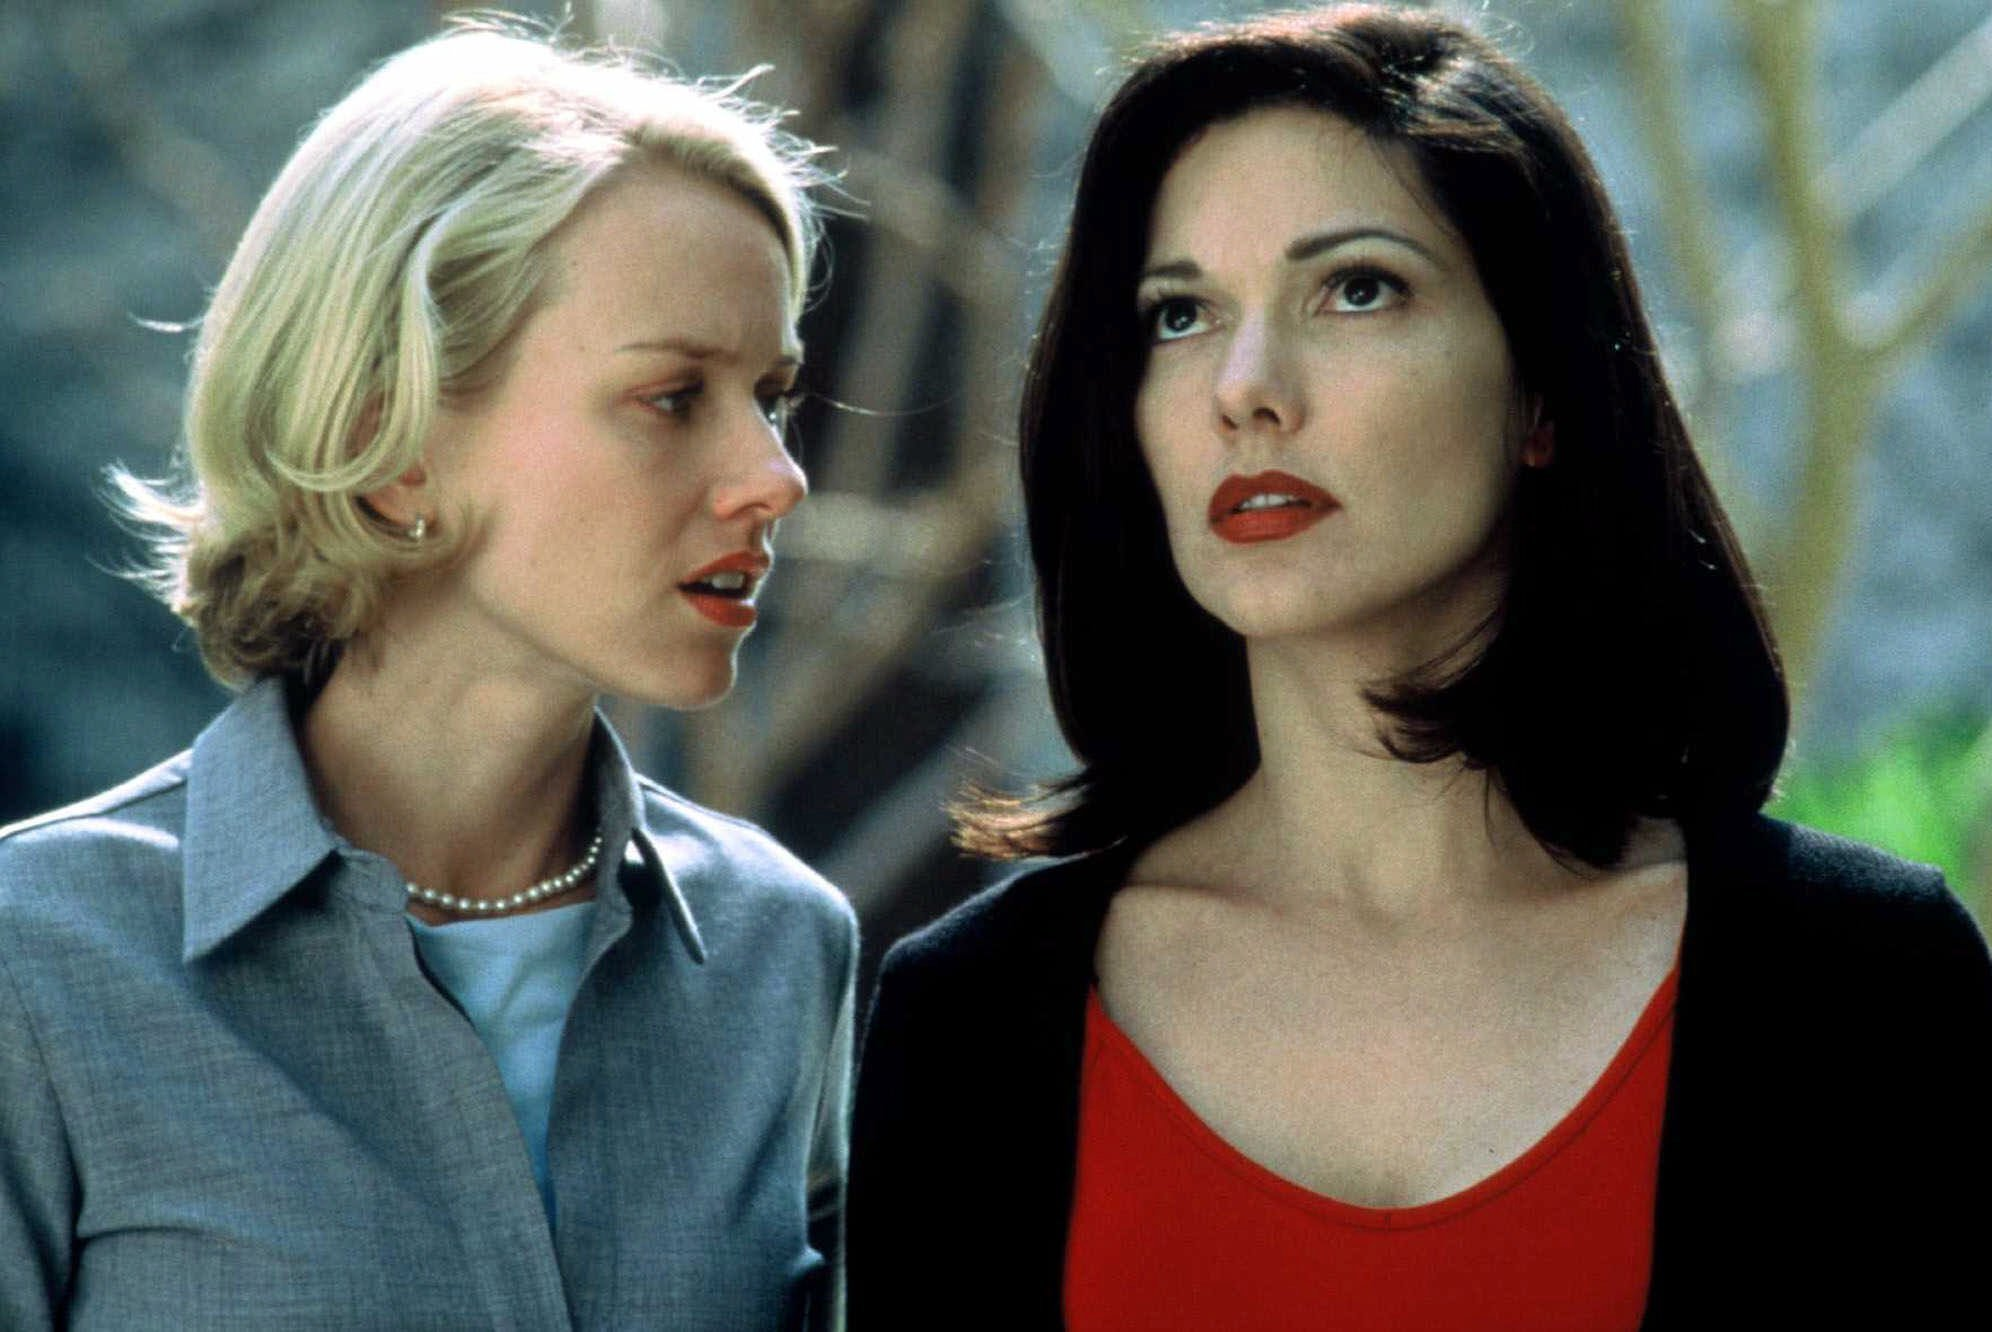 Naomi Watts and Laura Harring in 'Mulholland Drive.'